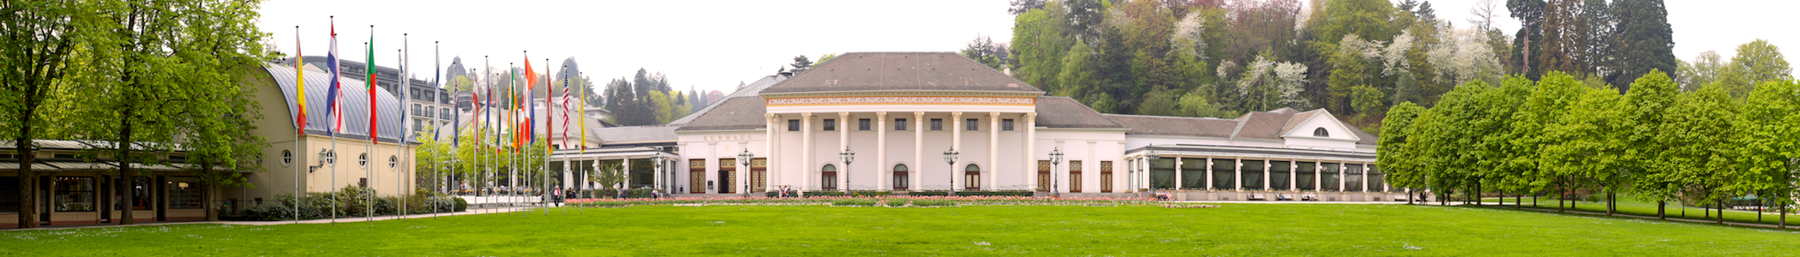 The iconic Kurhaus in the Kurpark